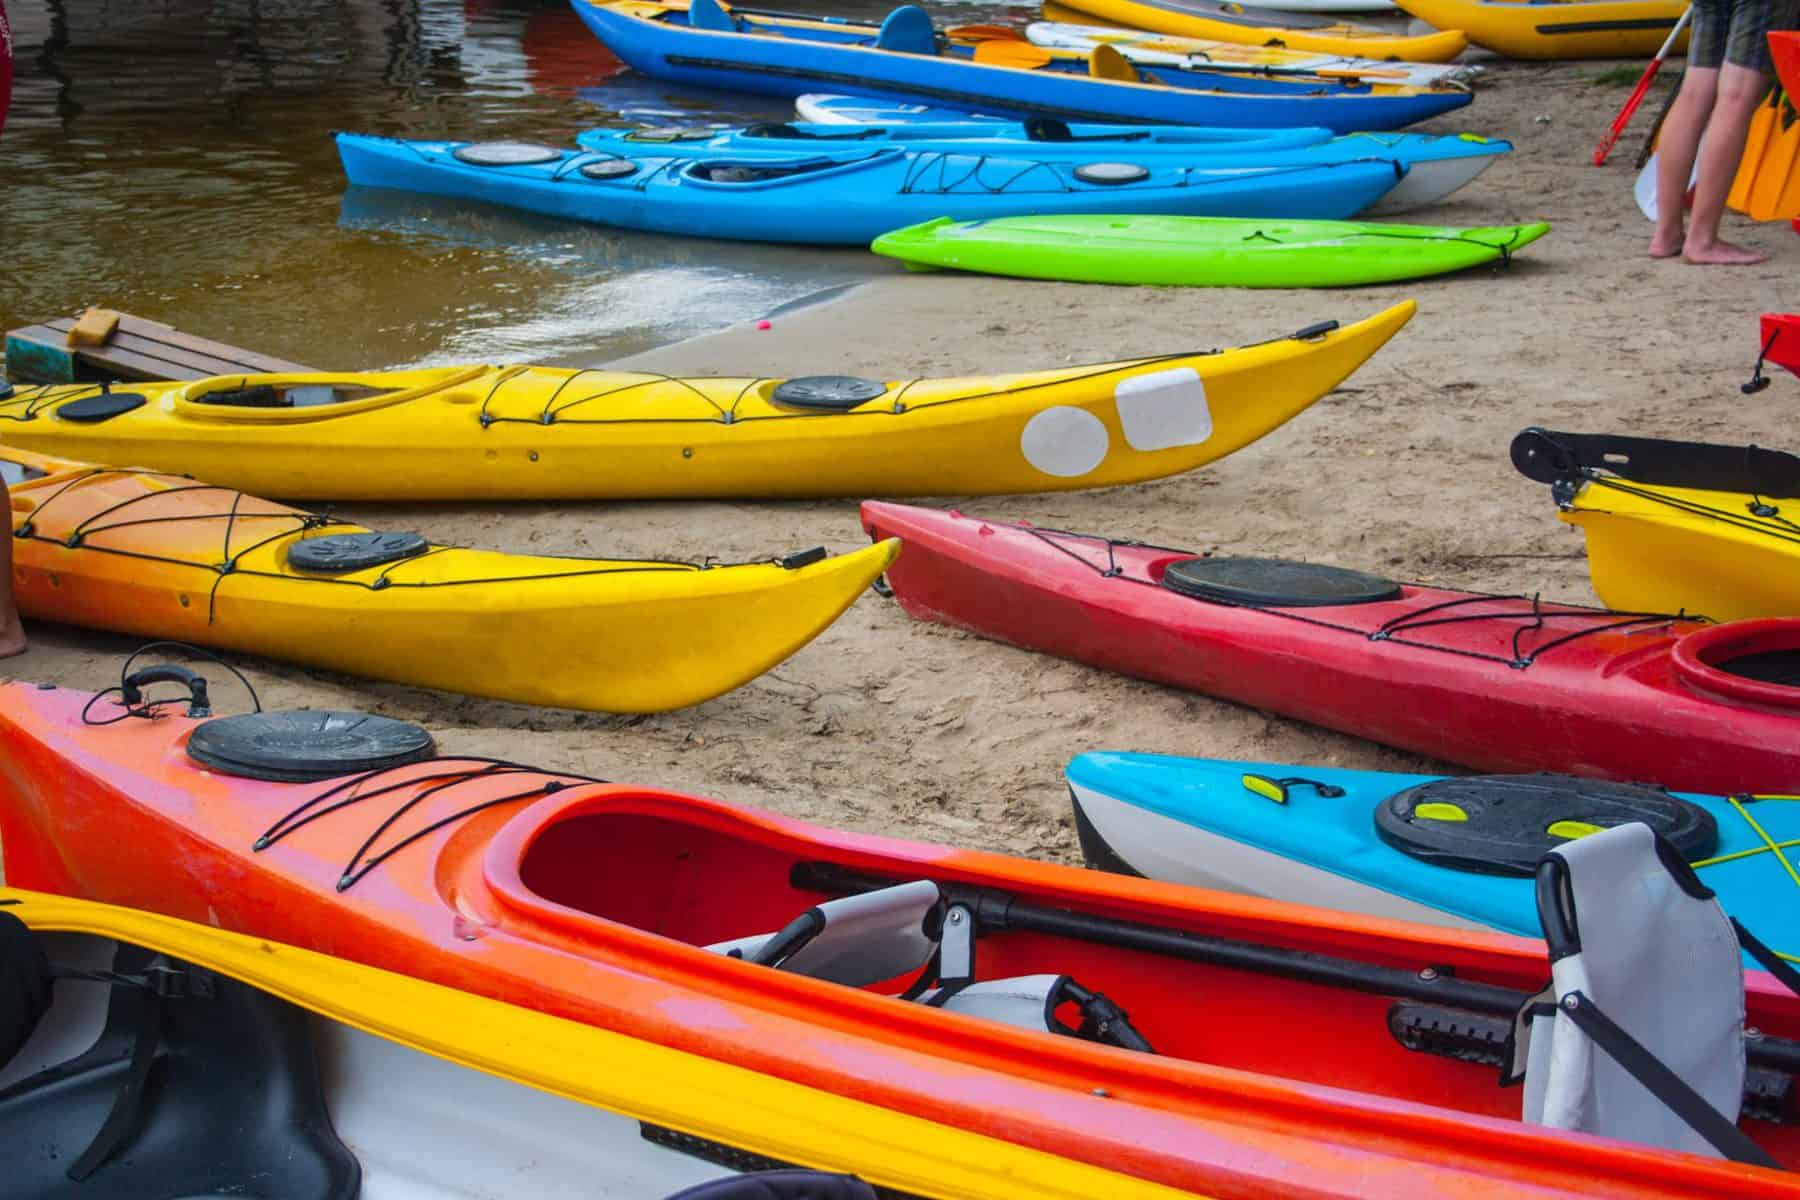 Different type of kayaks on beach